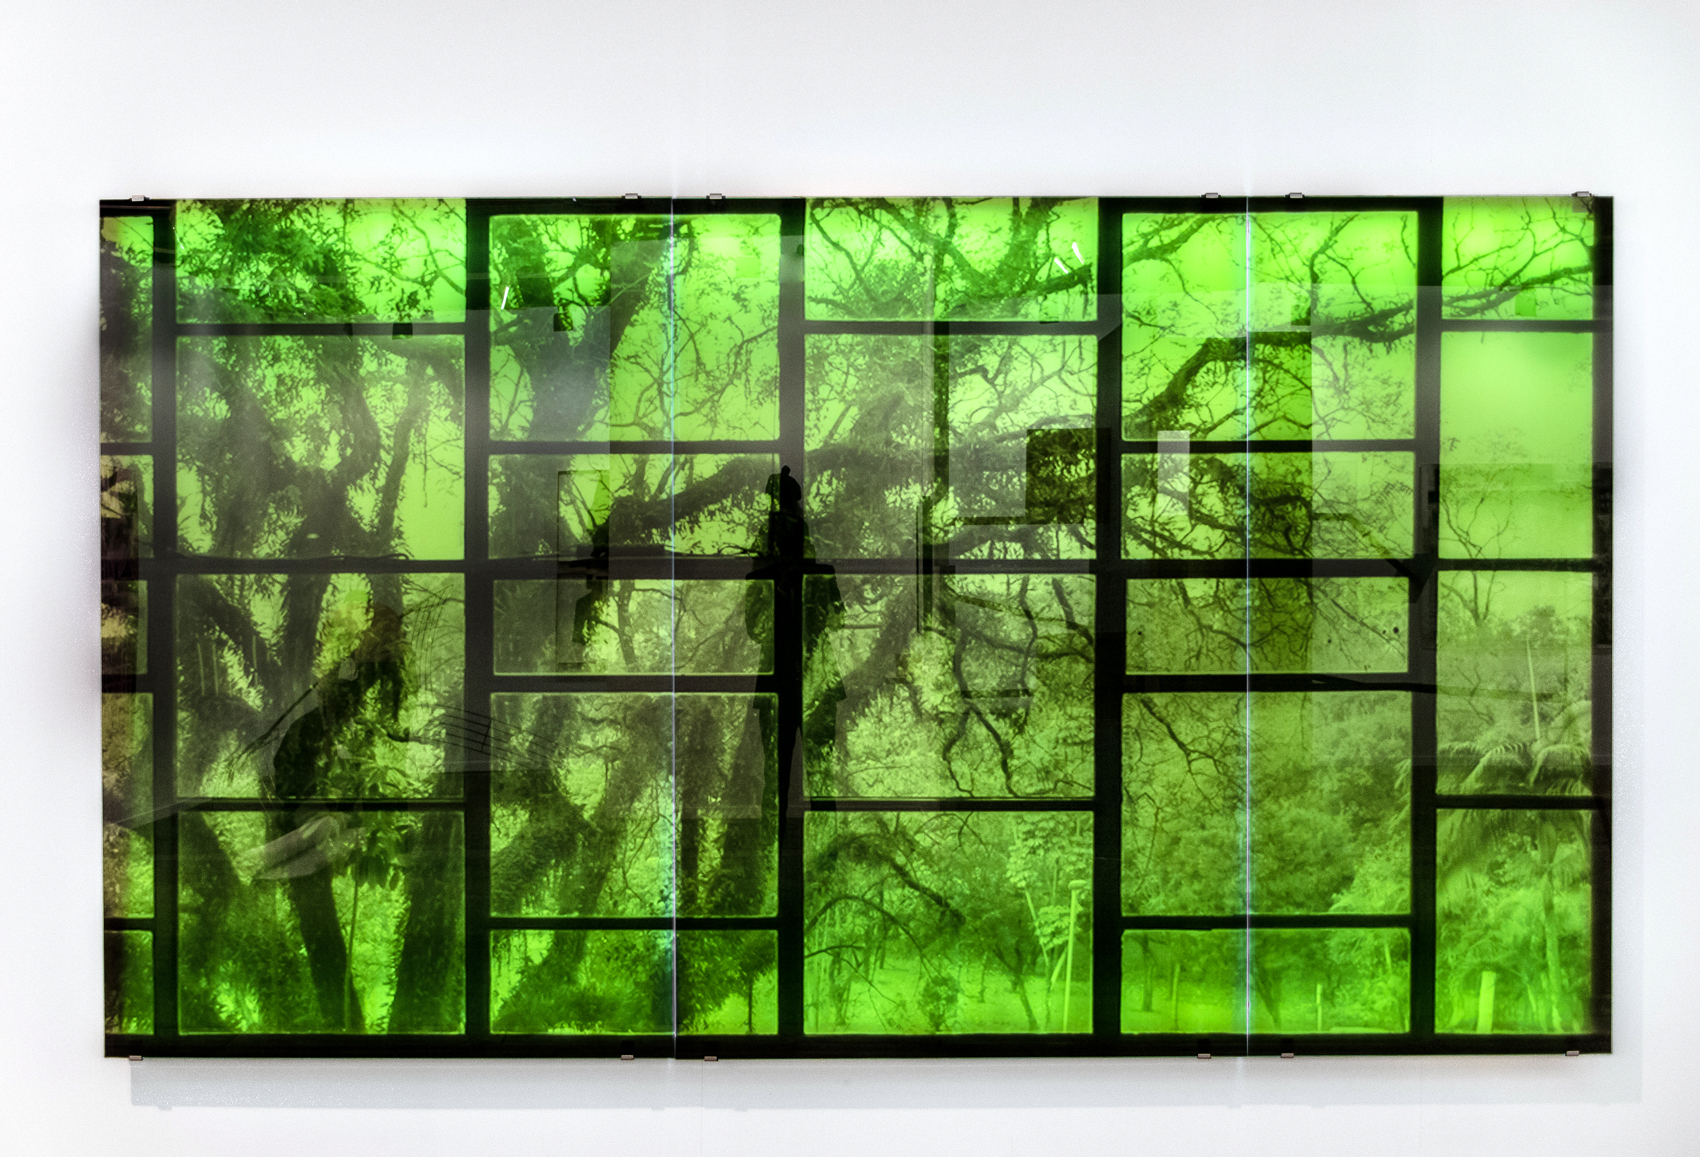 Oscar Niemeyer with Tree , 2016 3-panel silkscreen print on glass with LED lighting overall dimensions: 85 x 151 inches, 216 x 384cm  Edition of 3